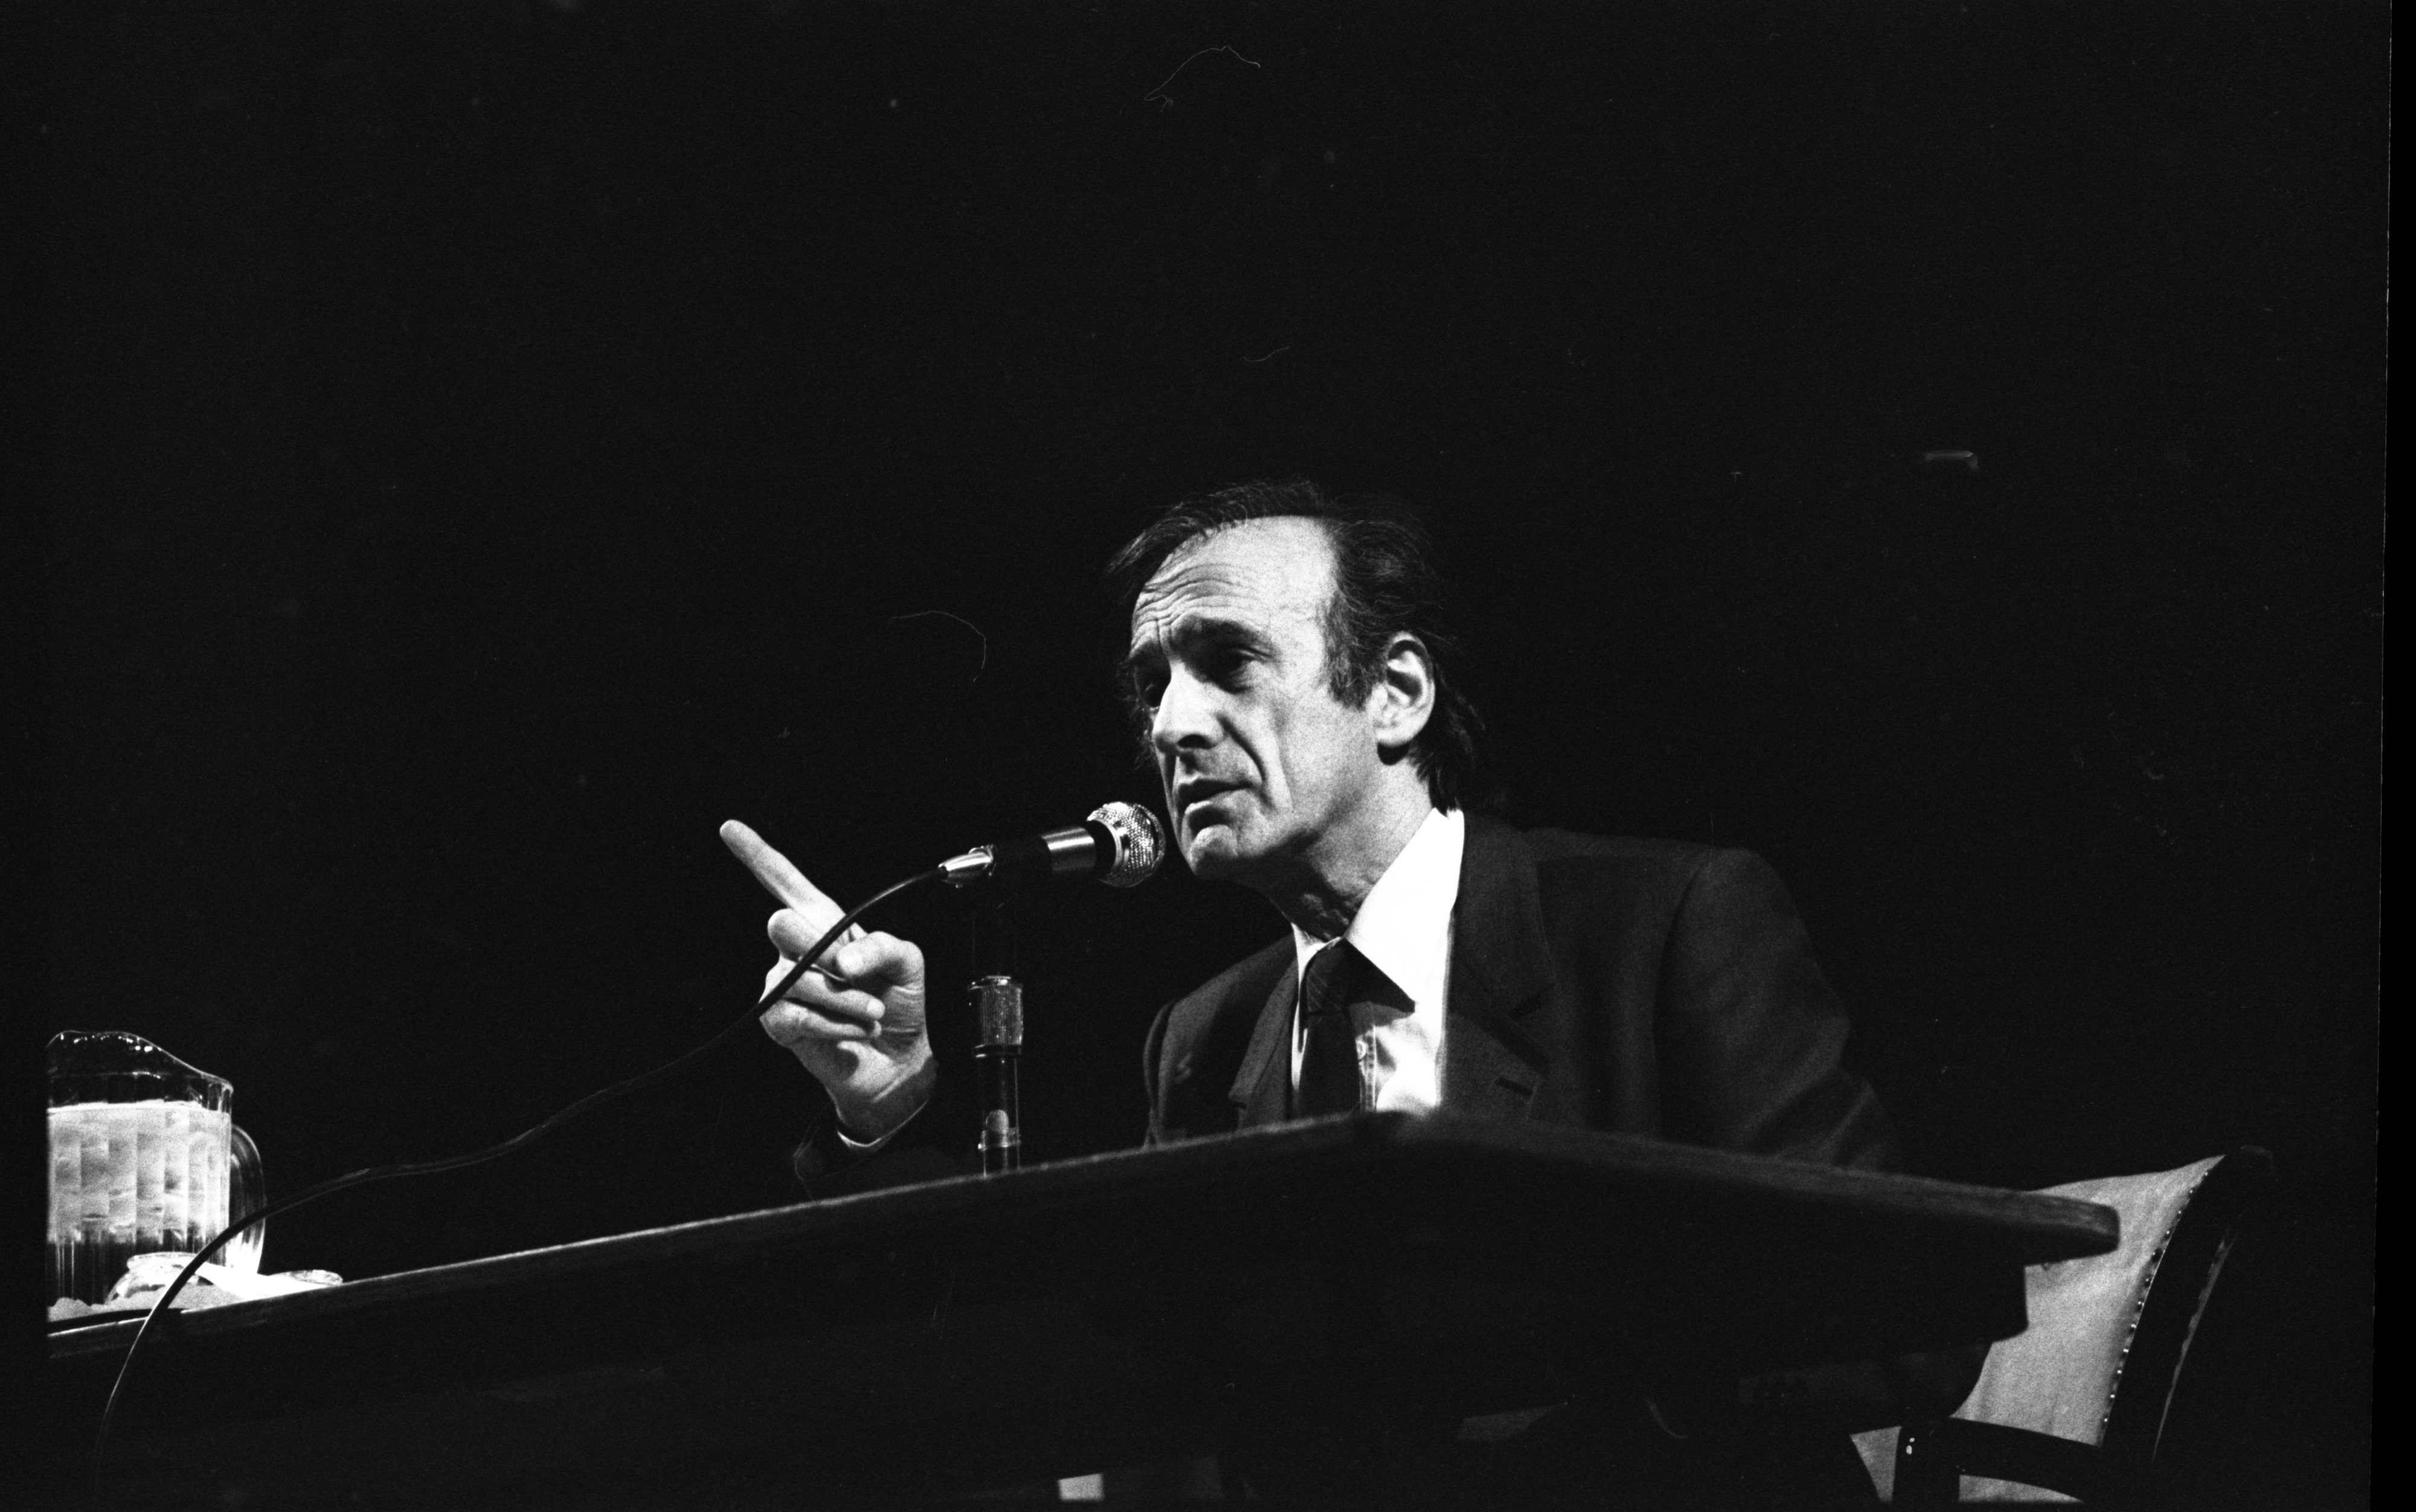 Elie Wiesel Speaks To Students At Rackham, October 30, 1985 image